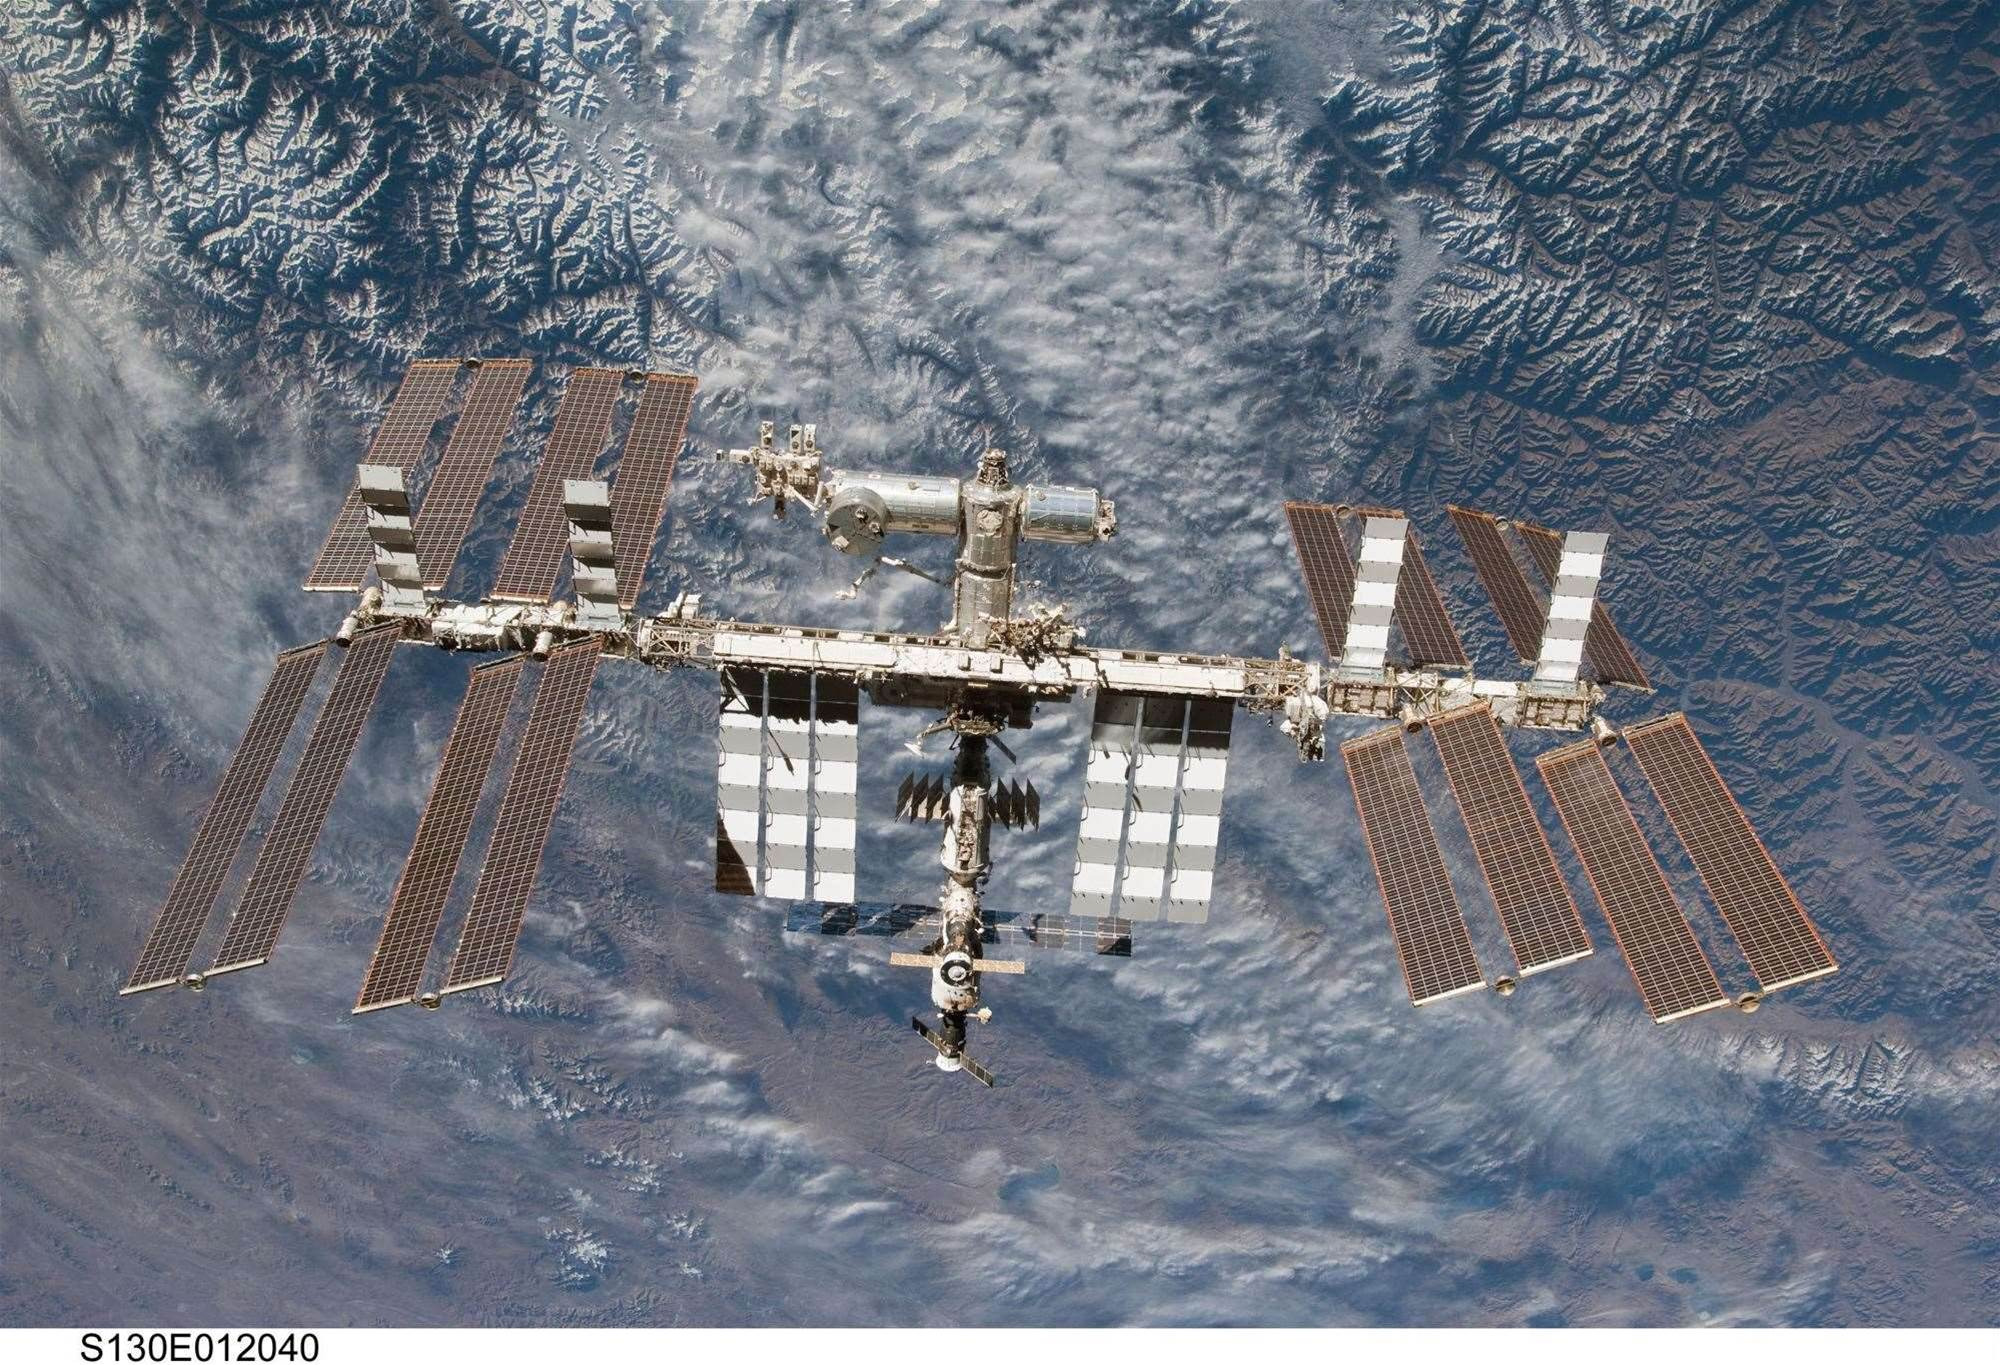 NASA's Making Parking Spots On The Space Station For Commercial Taxis